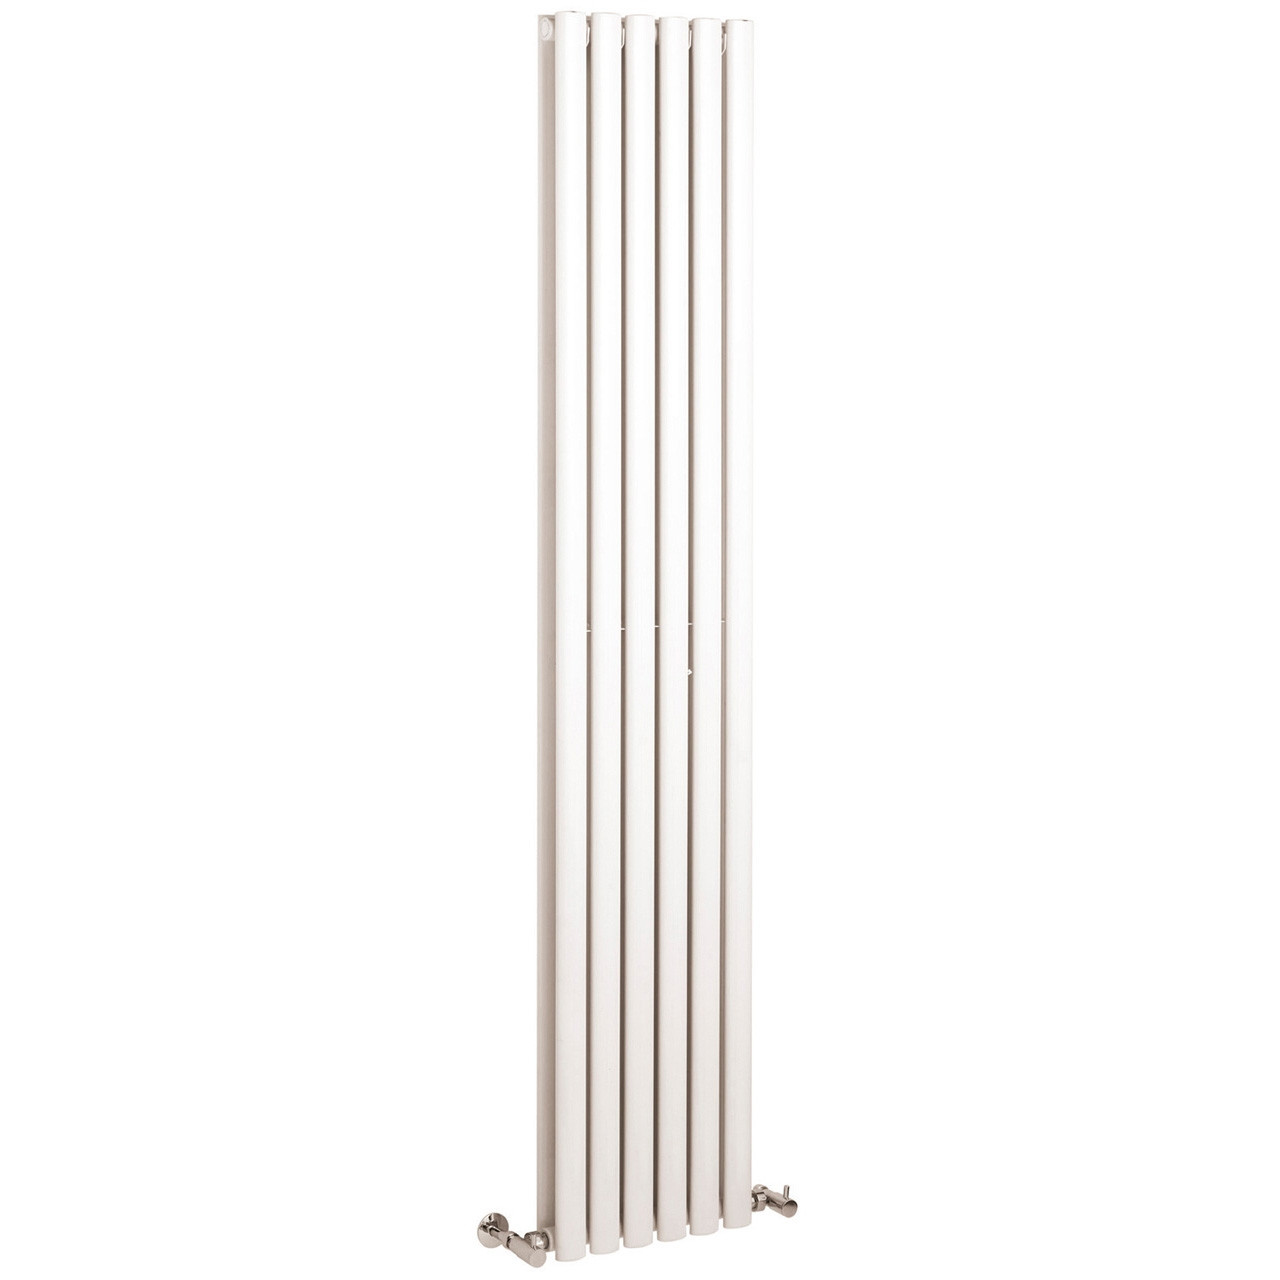 Hudson Reed Revive Double Panel Radiator 1800mm x 354mm - HL326